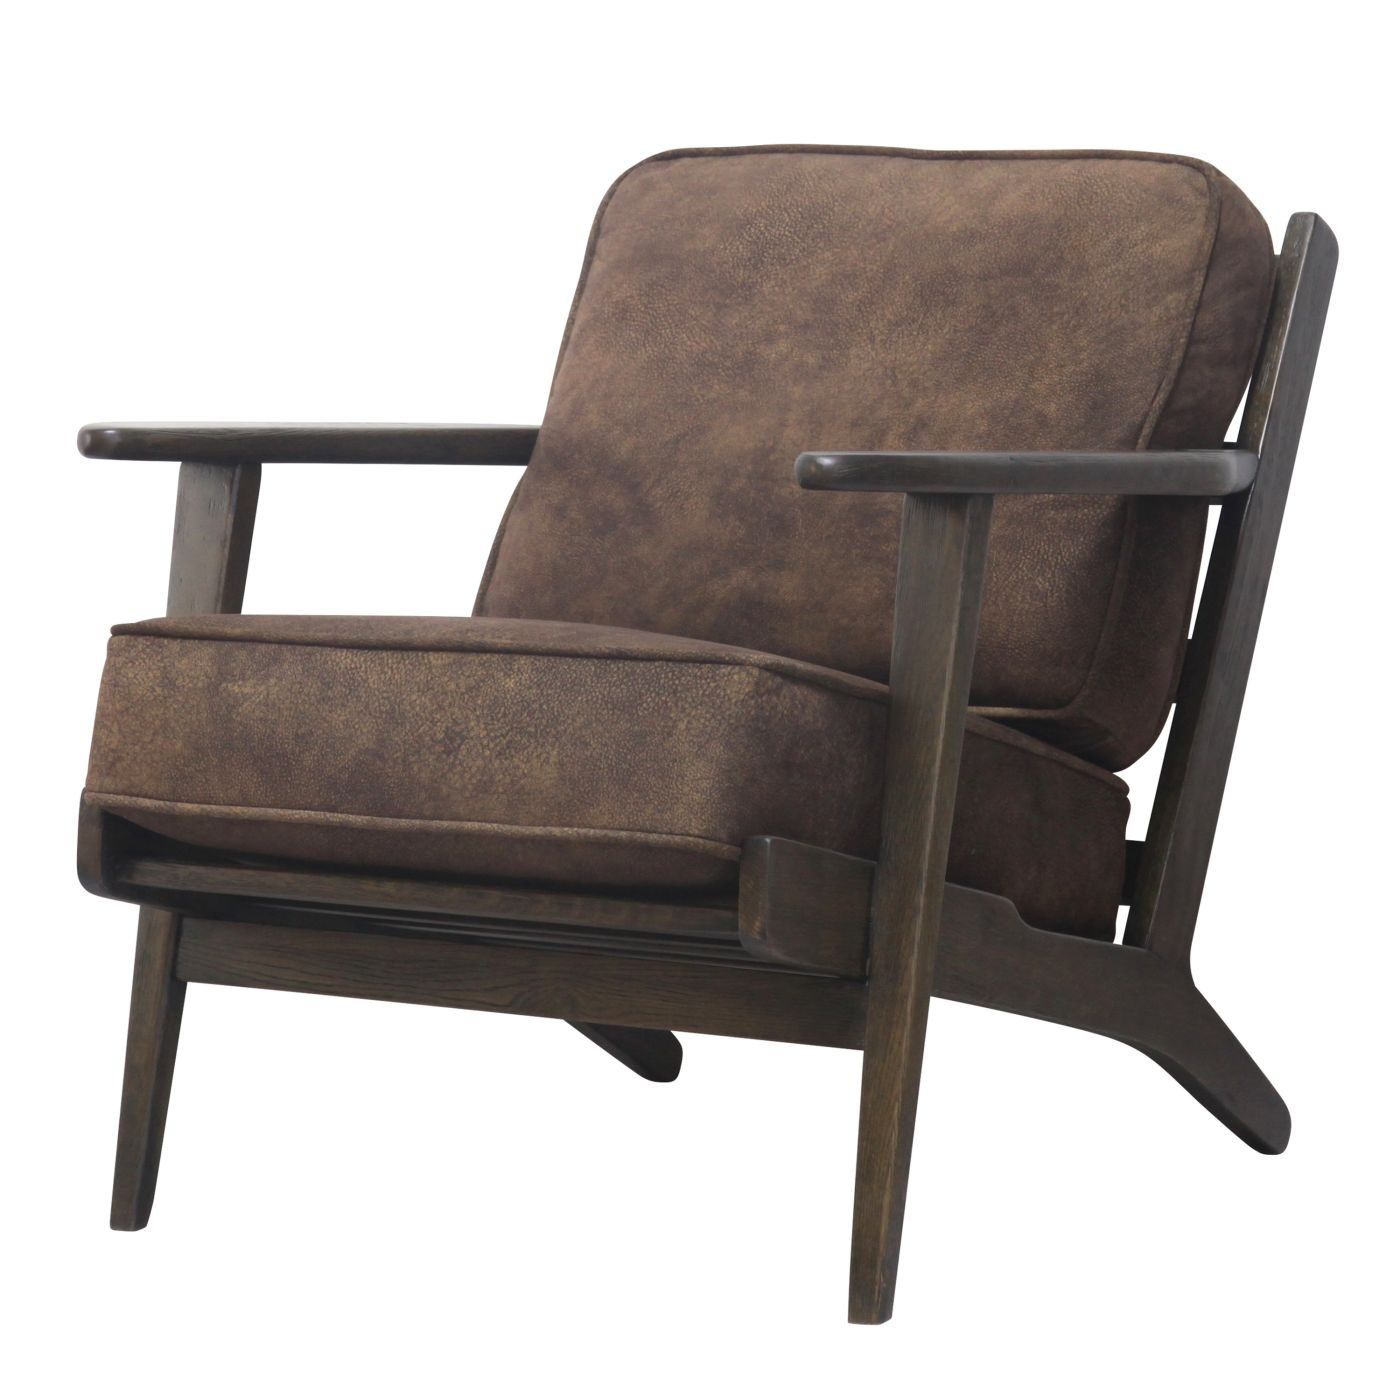 Dark Brown Accent Chairs.Buy New Pacific Direct 3900018 150 Albert Accent Chair Dark Brown Frame Mocha Hide At Contemporary Furniture Warehouse